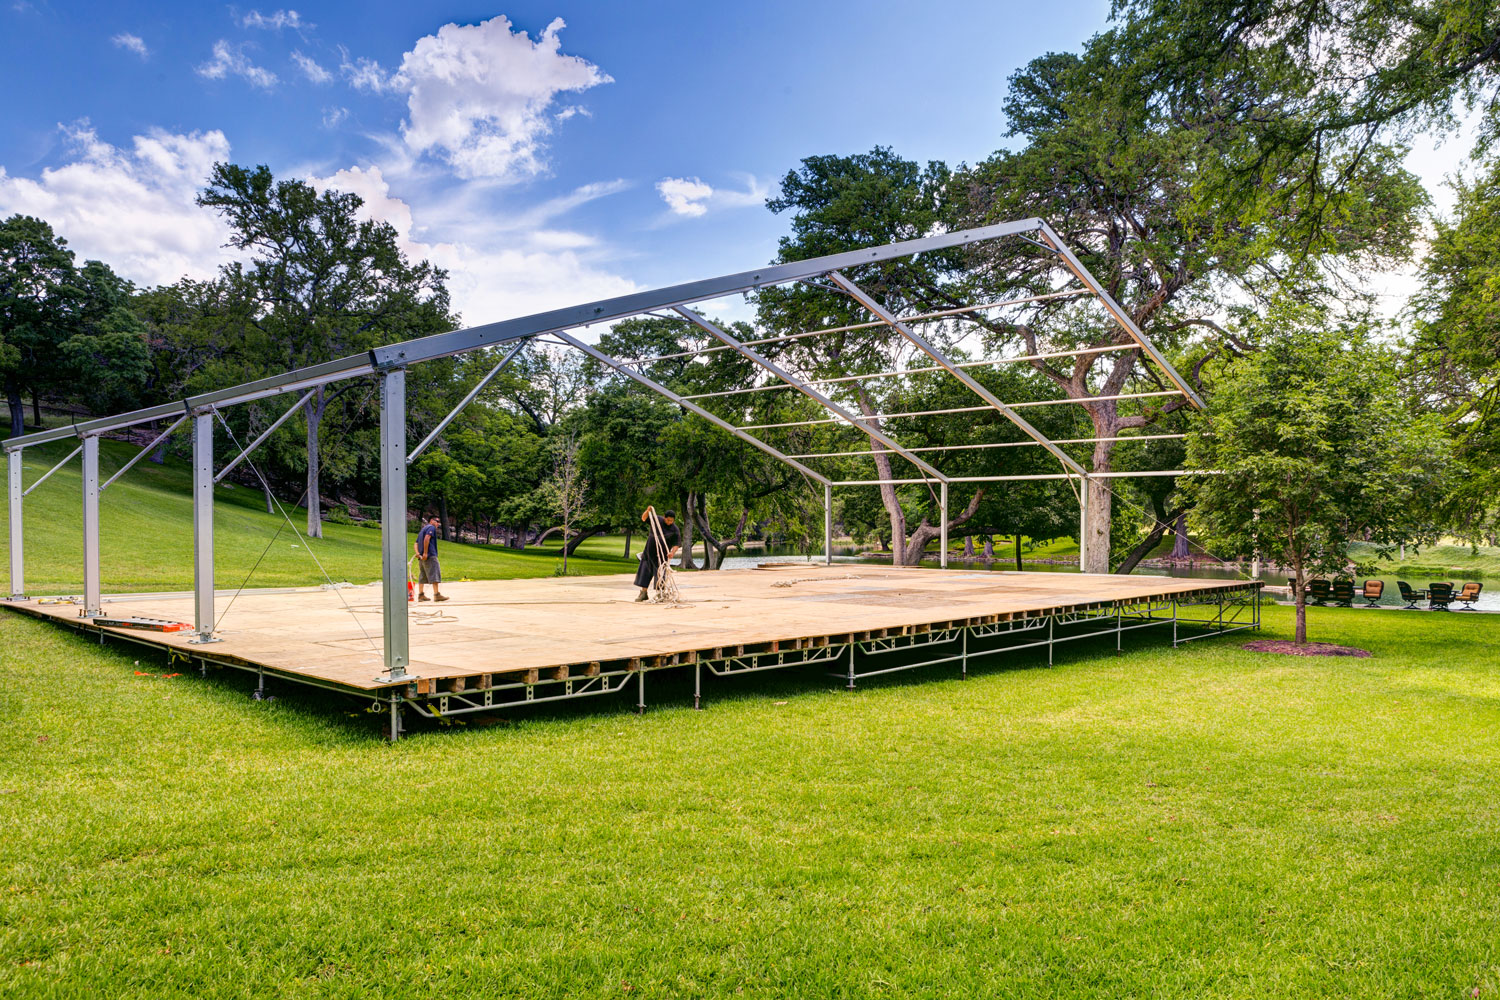 Building an event space from the ground up at a private home or ranch